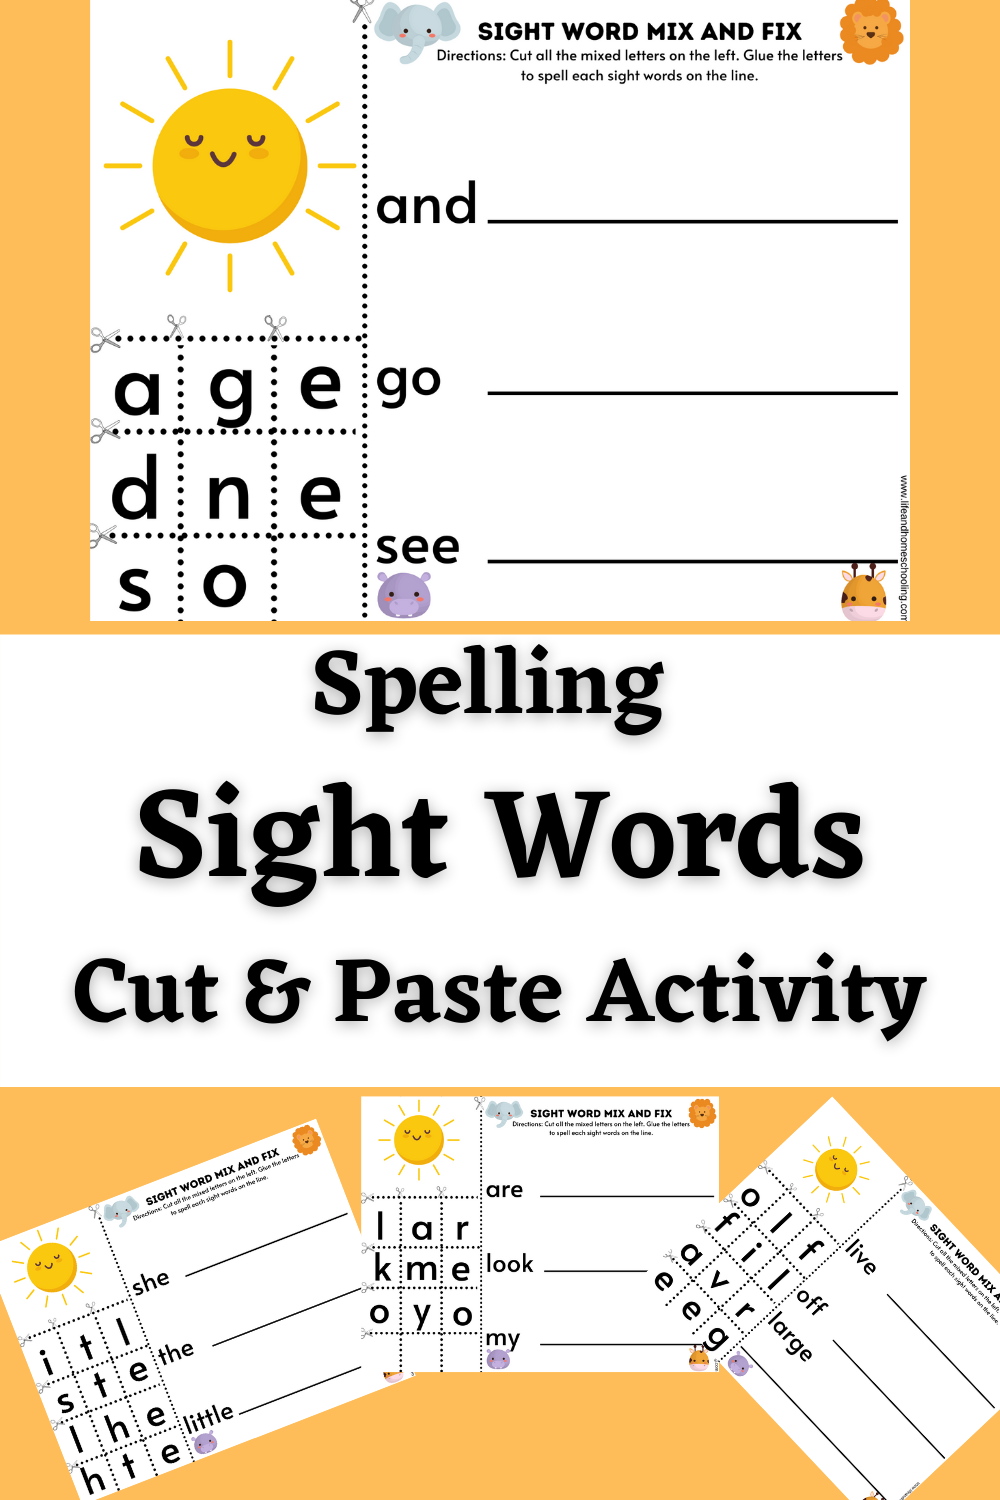 Spelling Sight Words Printable Activity/ Life and Homeschooling